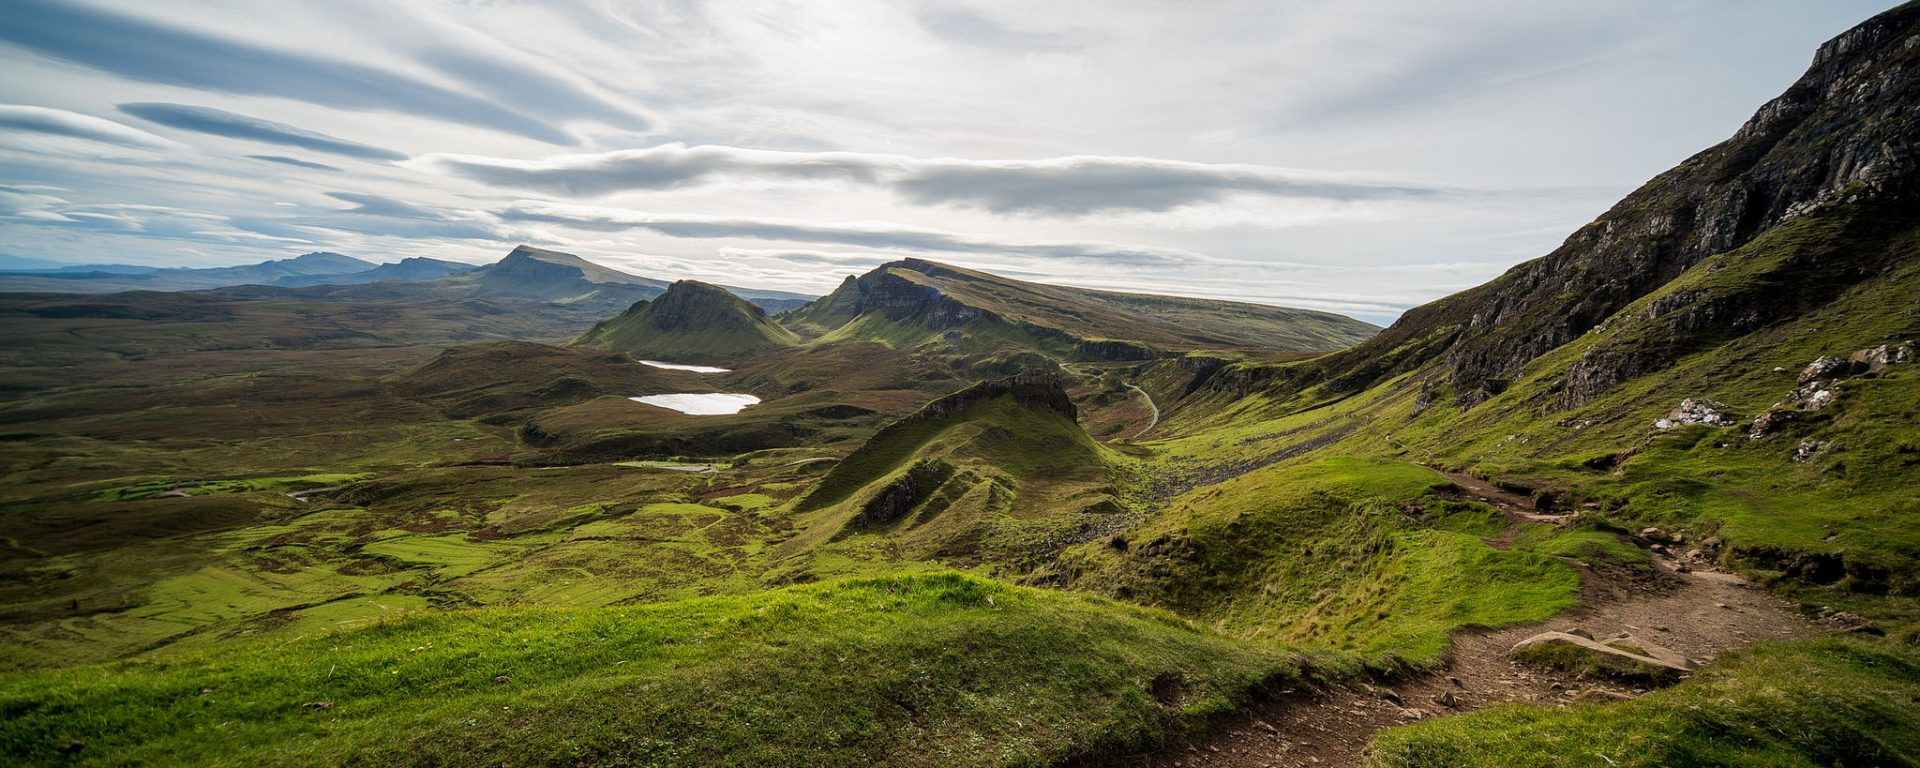 Things To Do In Skye >> 8 Amazing Things to Do on the Isle of Skye, Scotland | Passport for Living